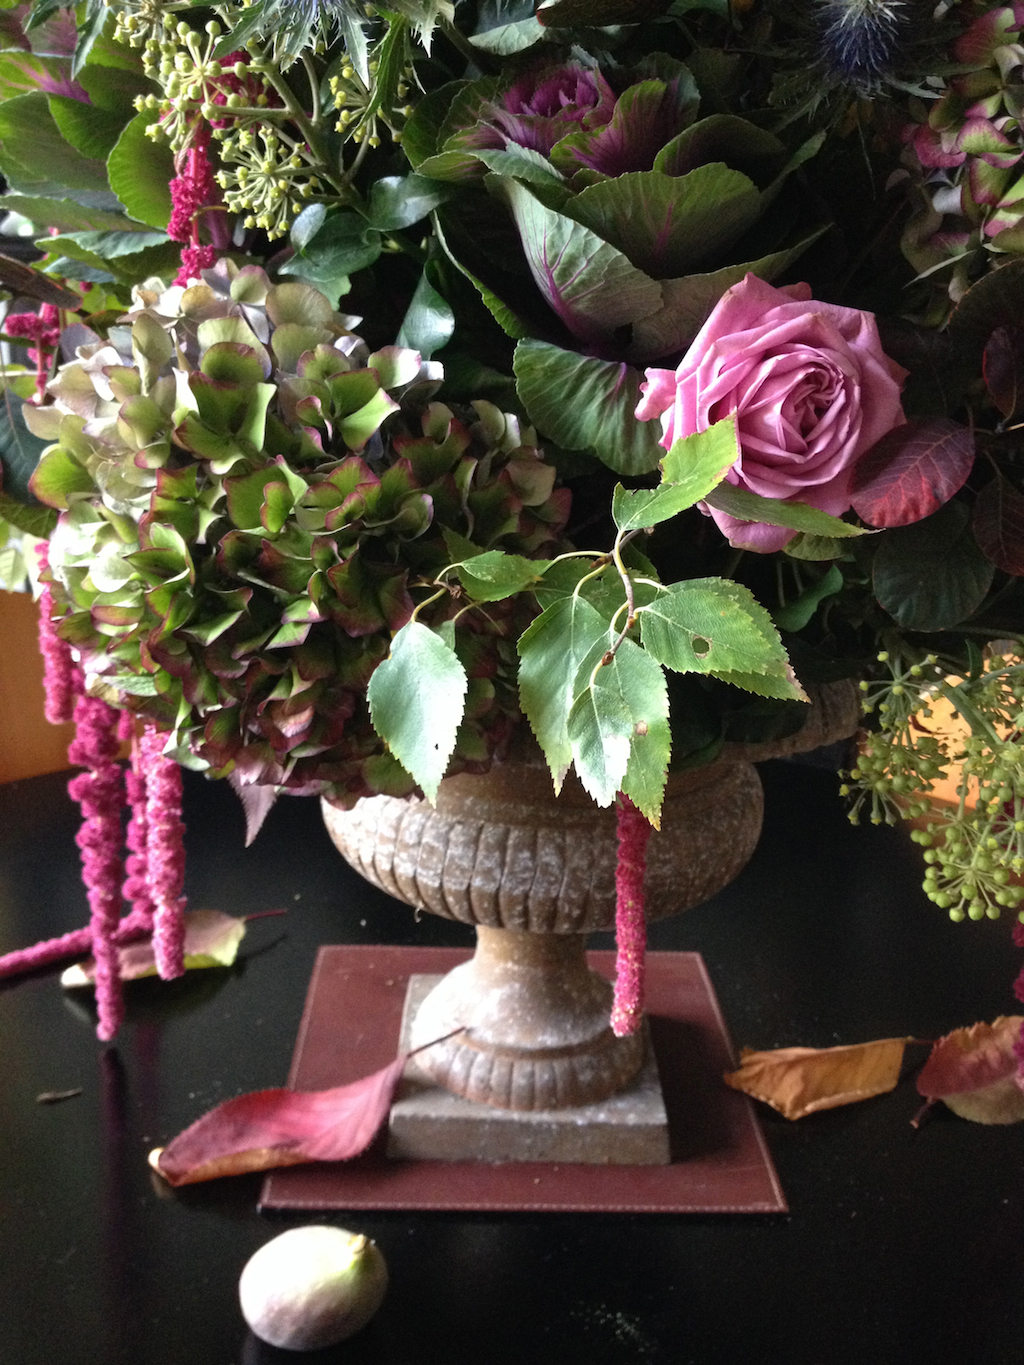 Autumn Flowers Bouquet Lilac Rose Hydrangea Amaranthus Cotinus Birch Ivy  Cherry Urn Fall Bouquet Fig Egon